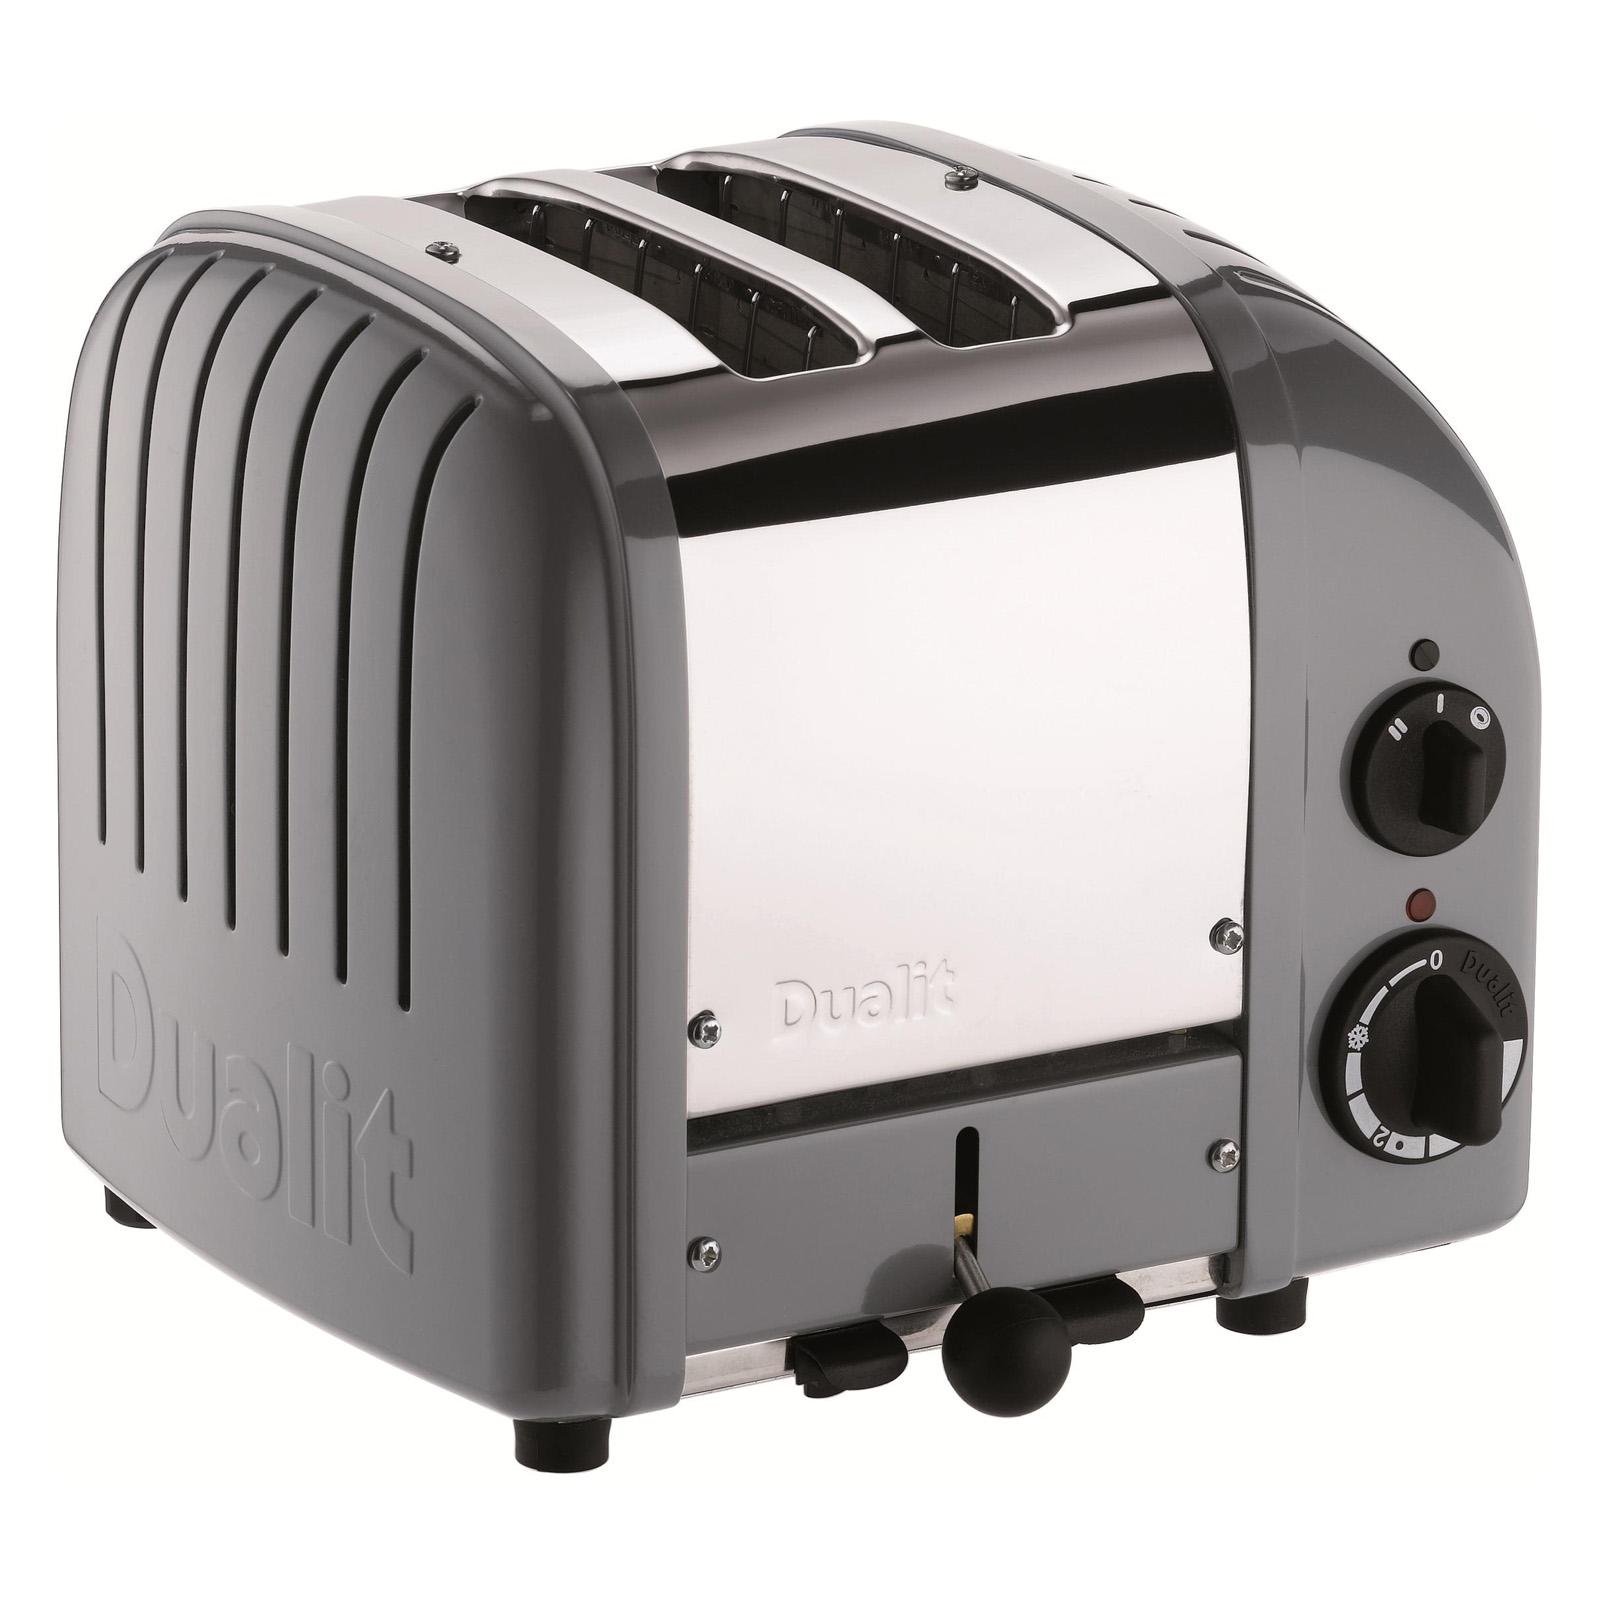 Dualit 27166 New Generation 2 Slice Classic Toaster - Cob...